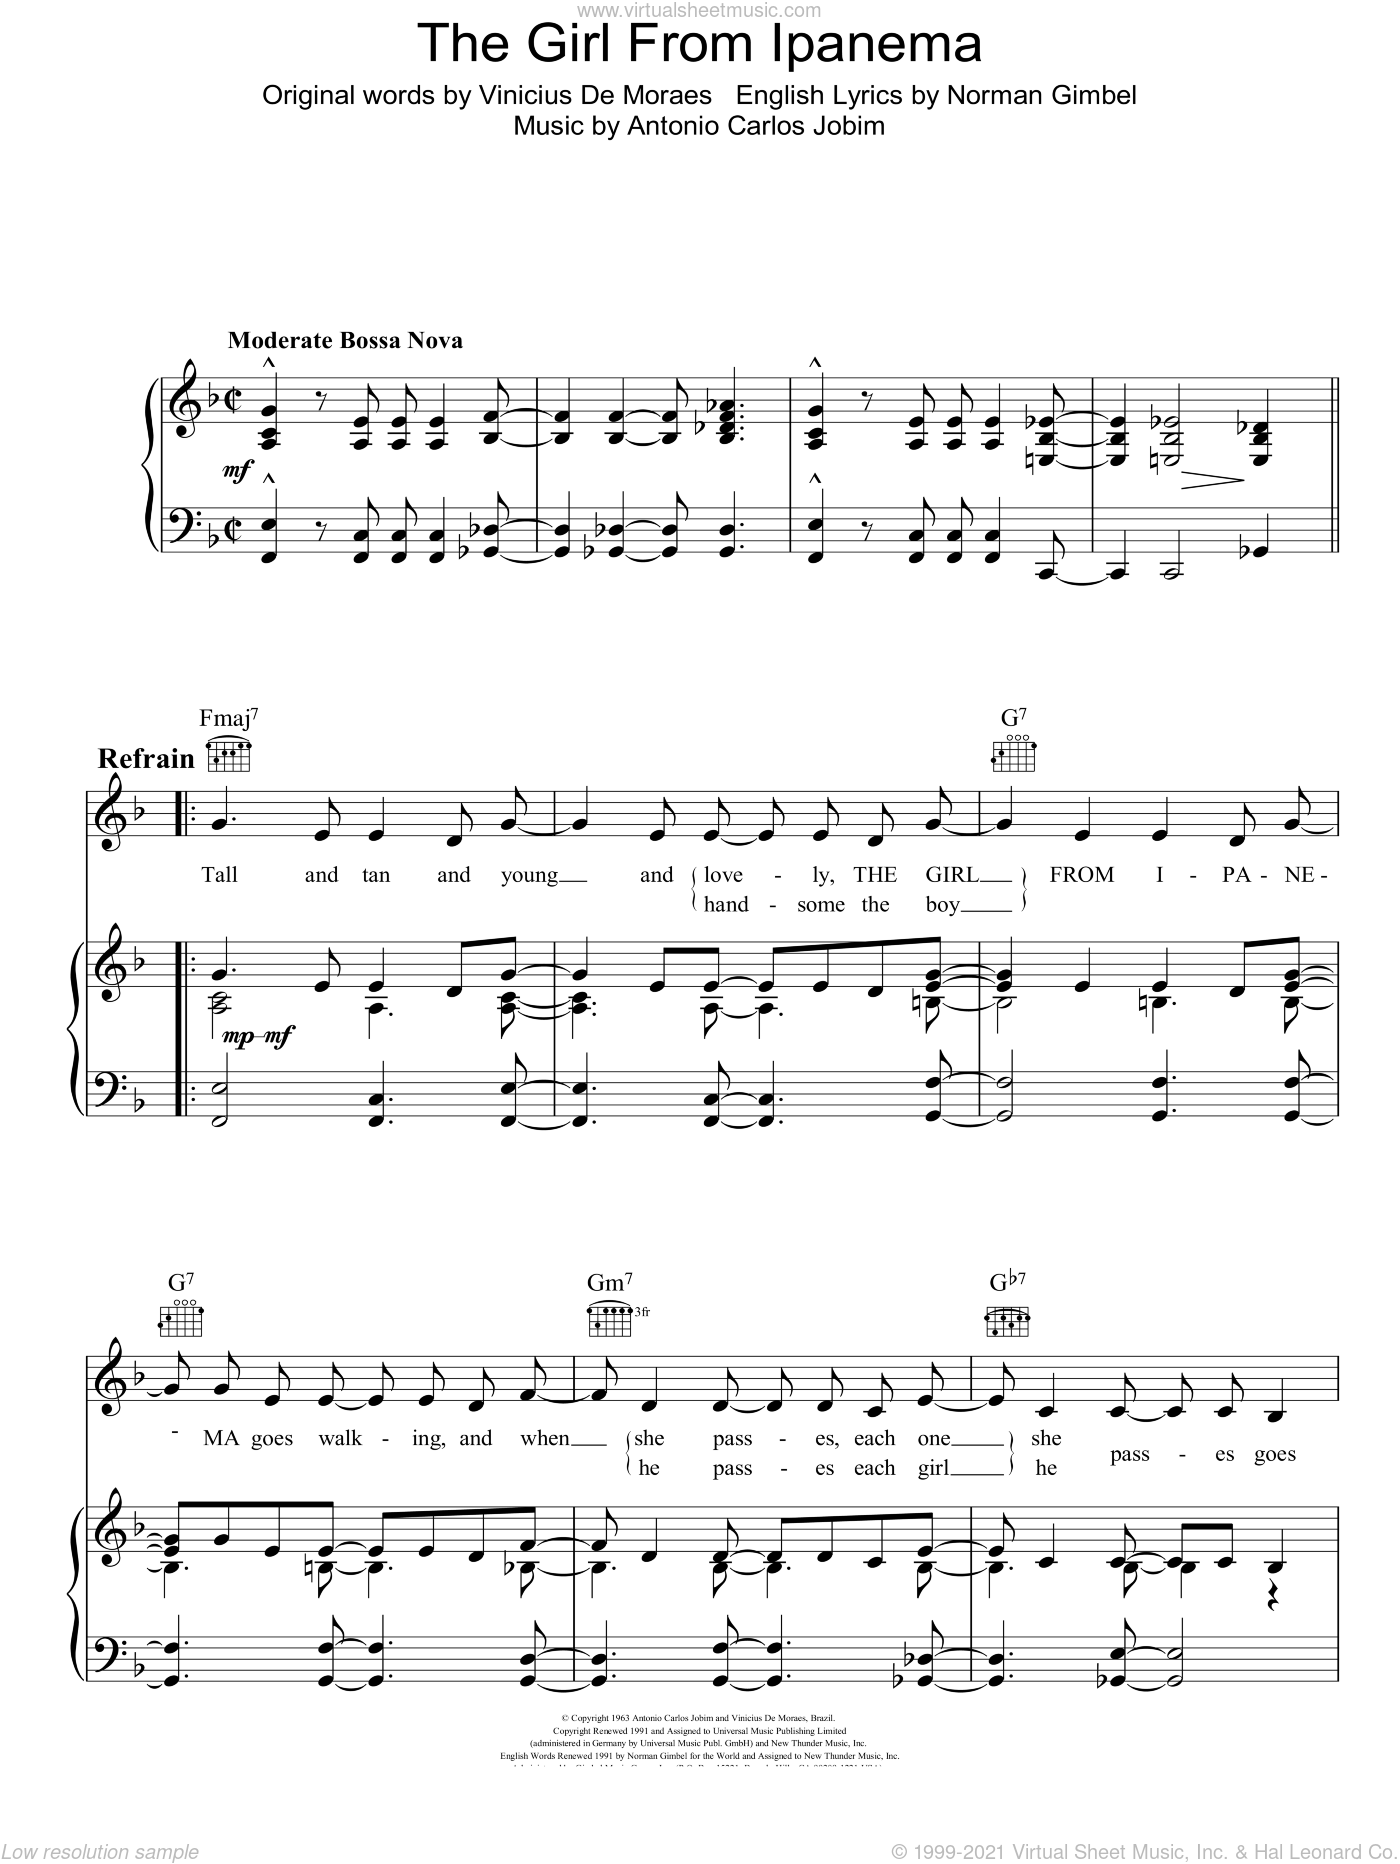 The Girl From Ipanema (Garota De Ipanema) sheet music for voice, piano or guitar by Vinicius de Moraes